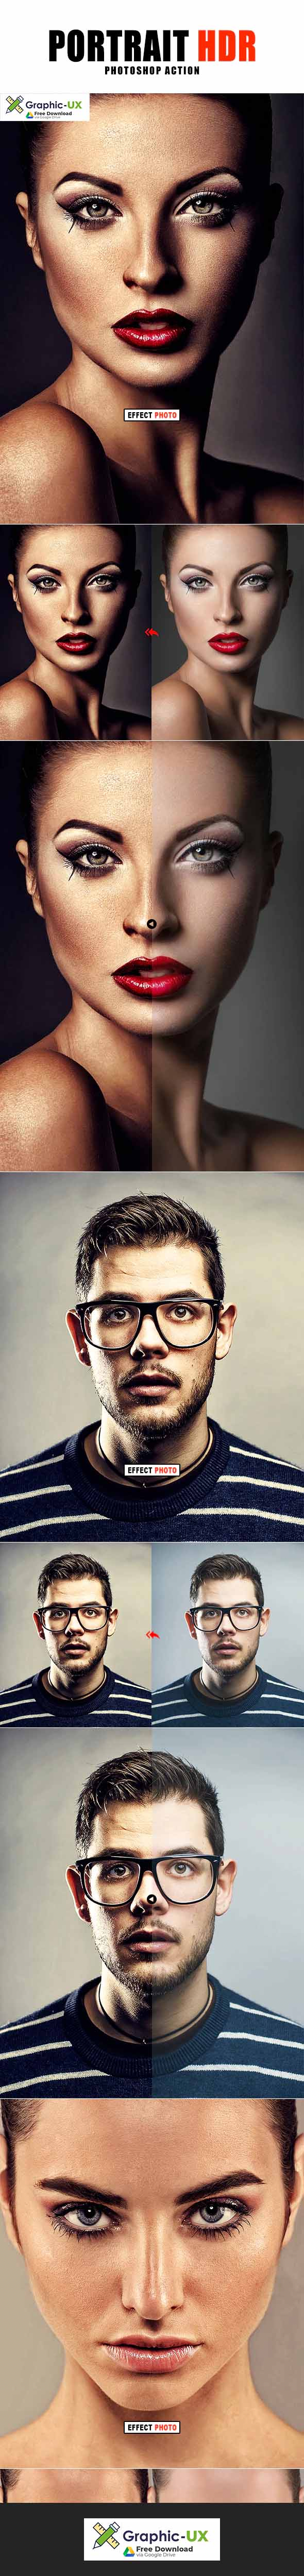 Portrait Hdr Photoshop Action free – GraphicUX